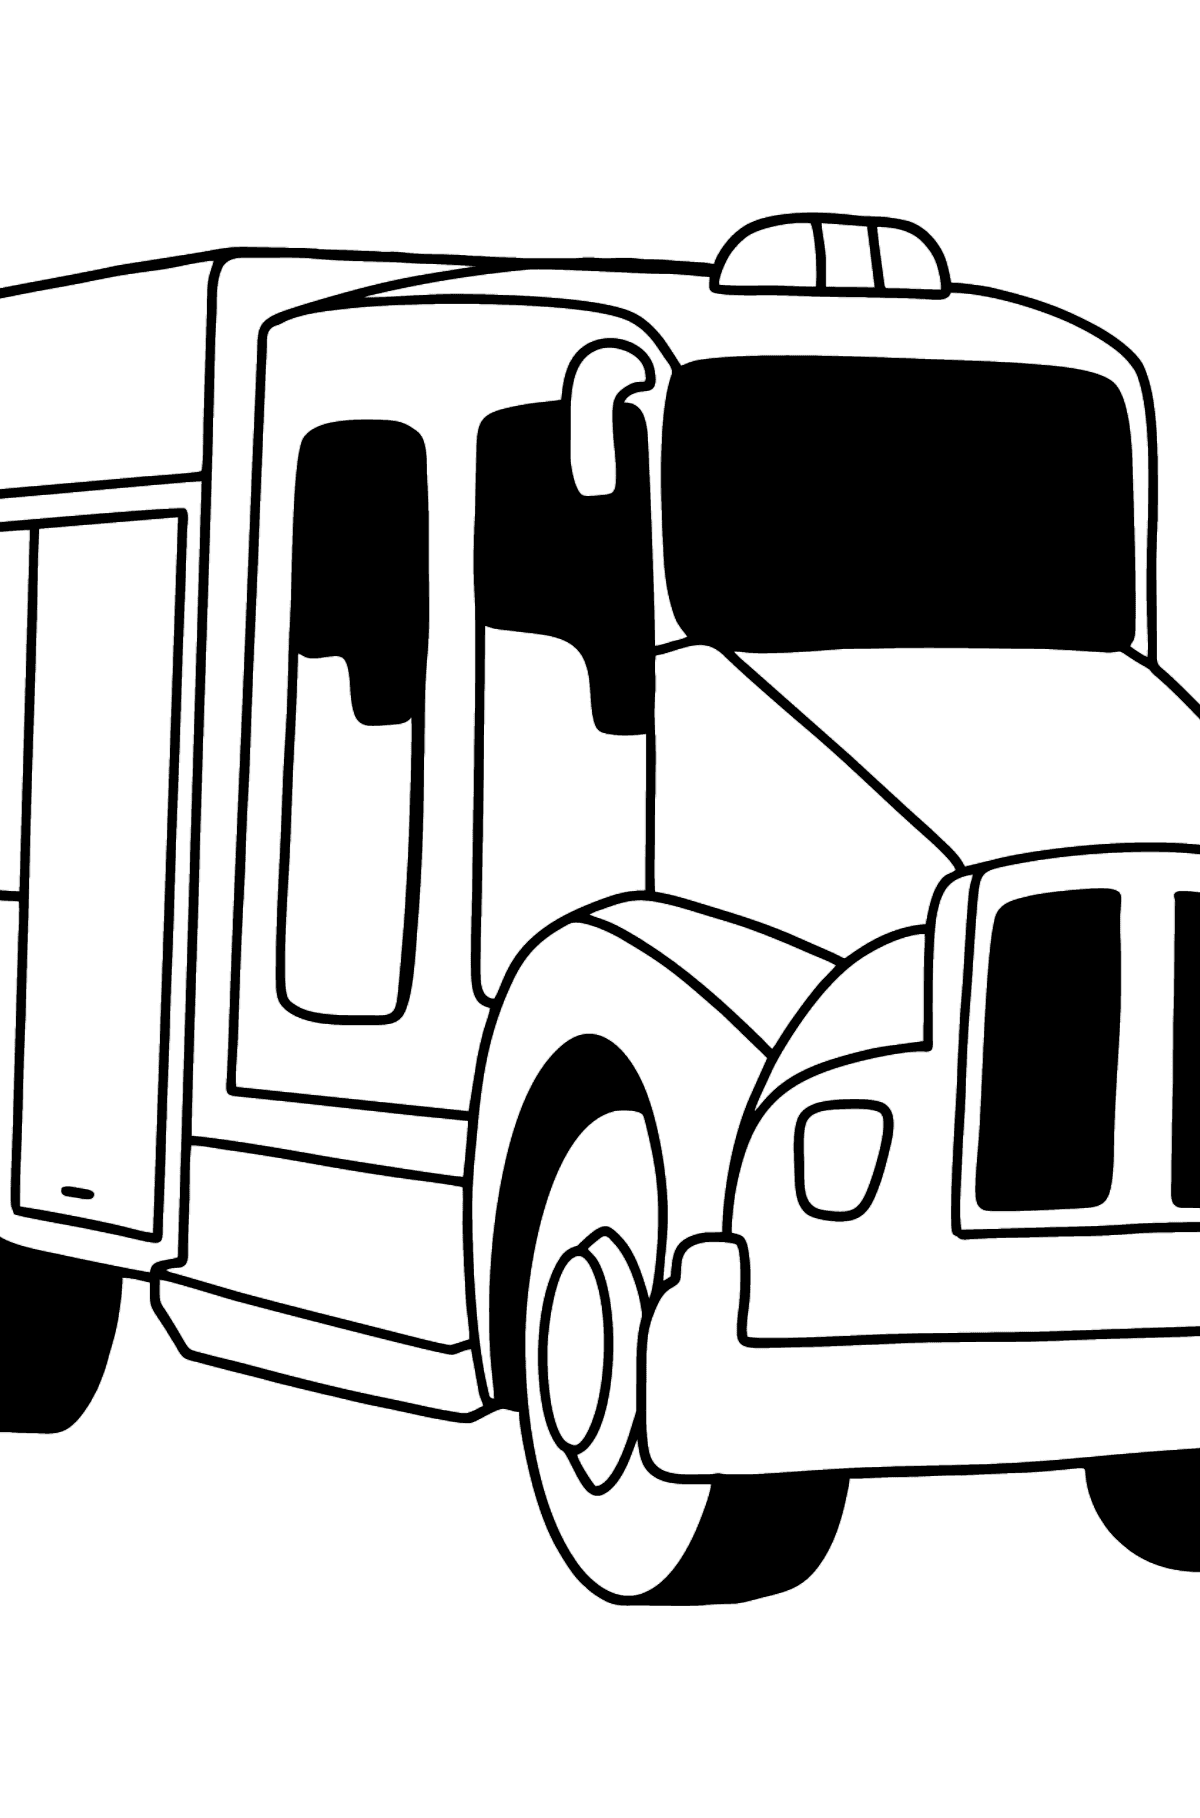 USA Fire Truck coloring page - Coloring Pages for Kids